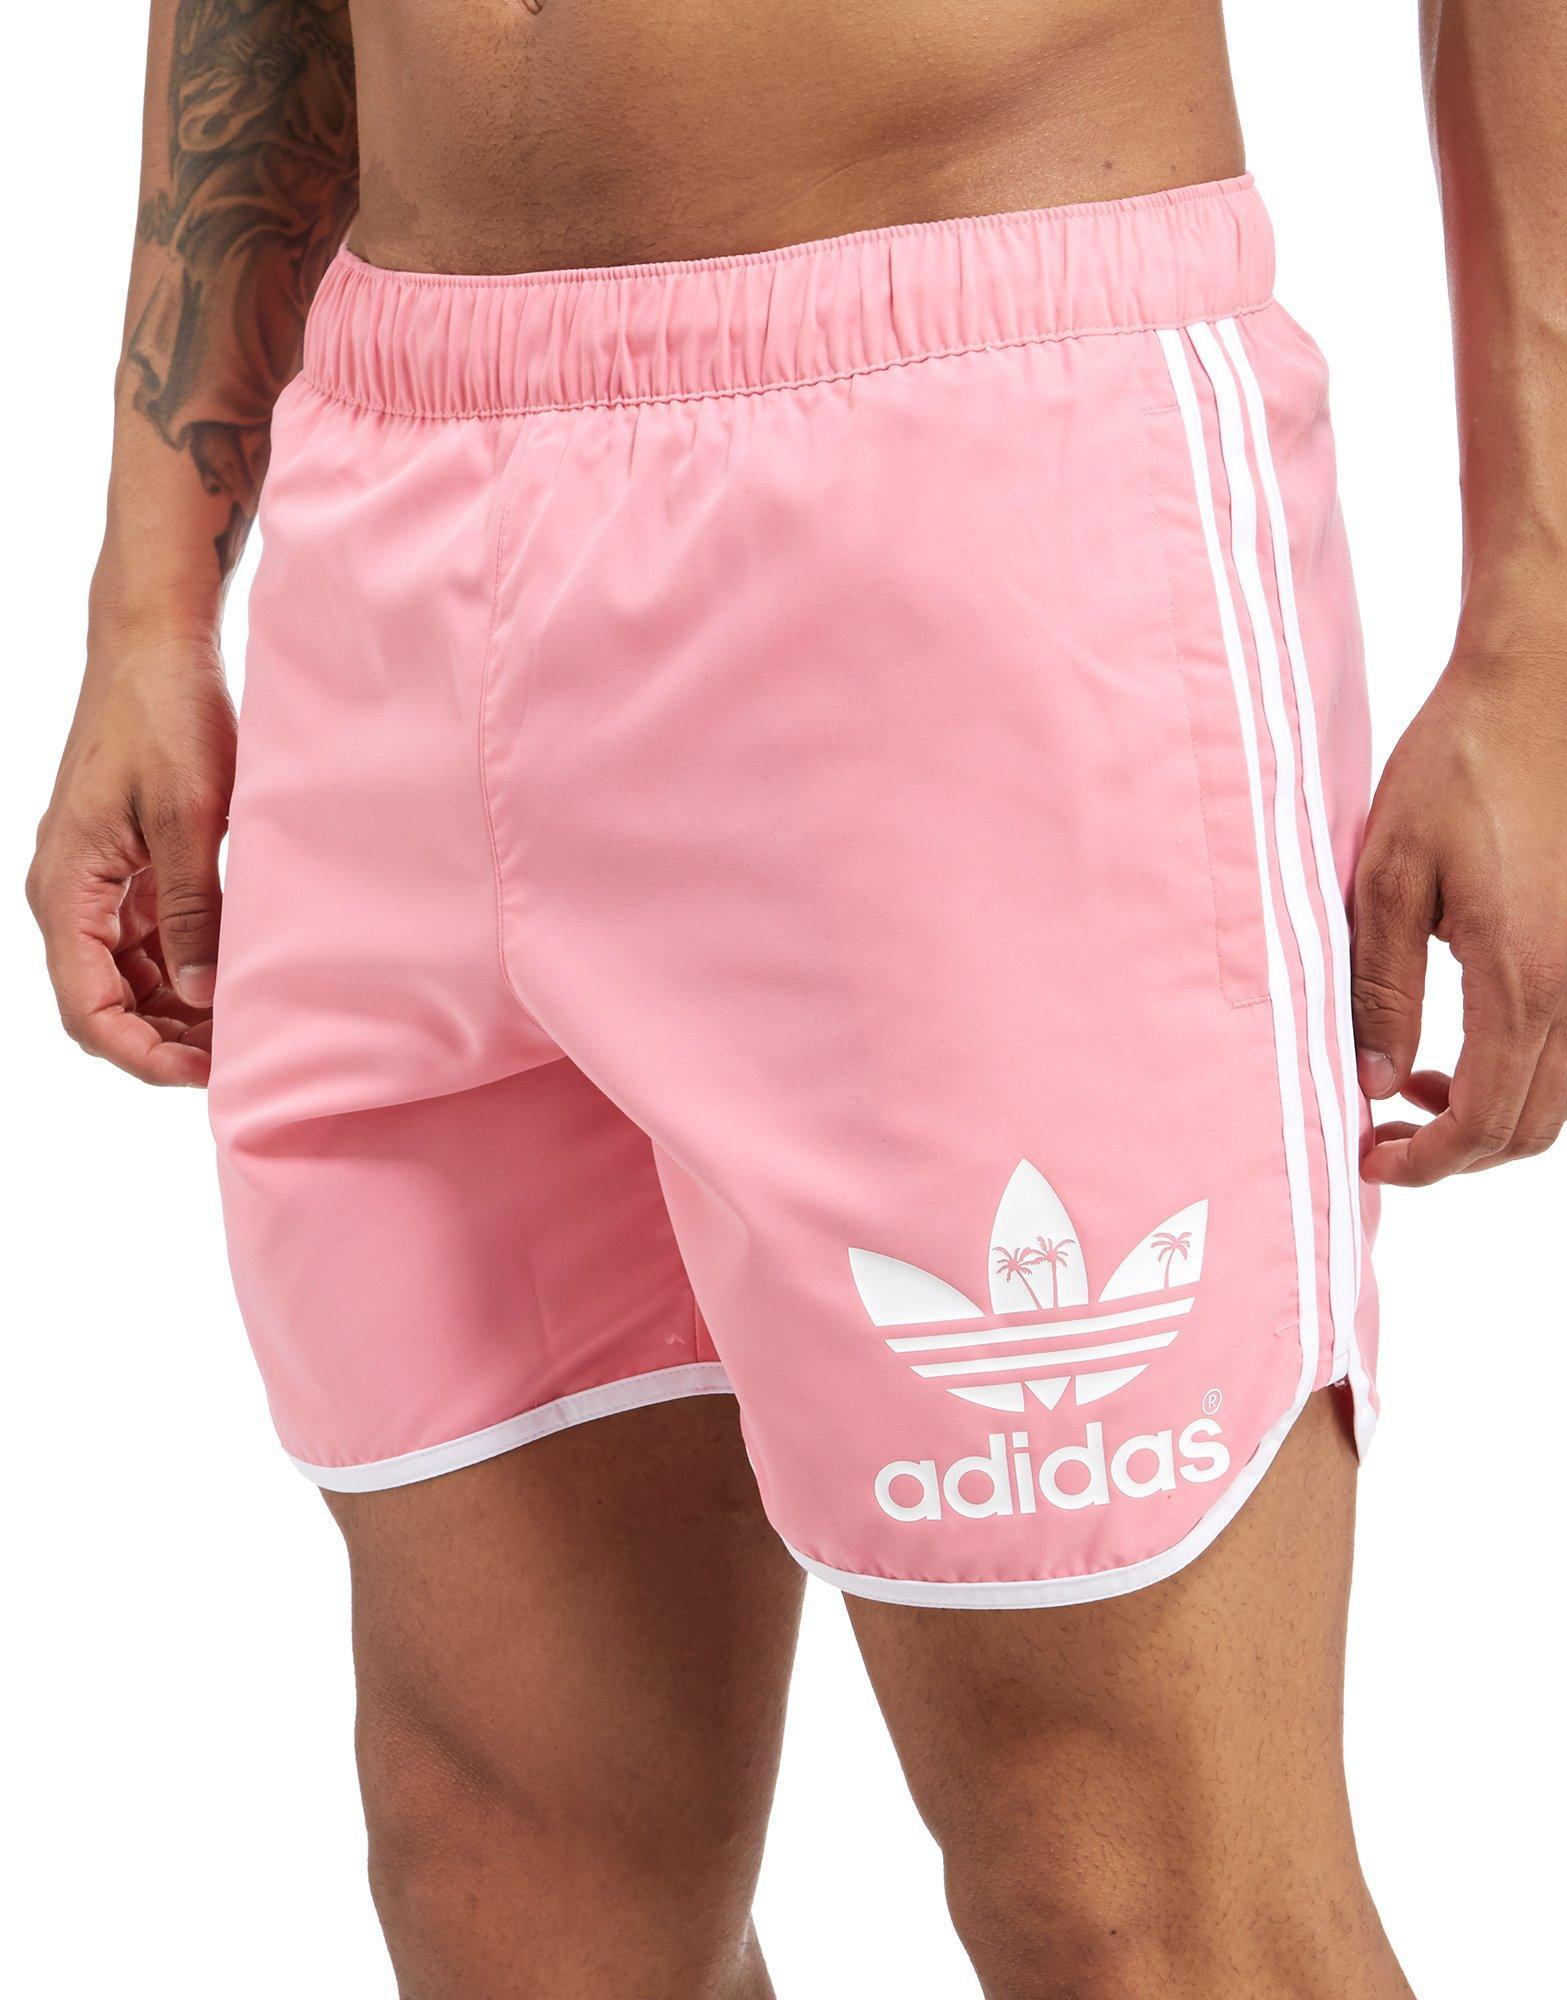 Adidas Pink Palm Lyst Originals For Men In Shorts QshorxBtCd